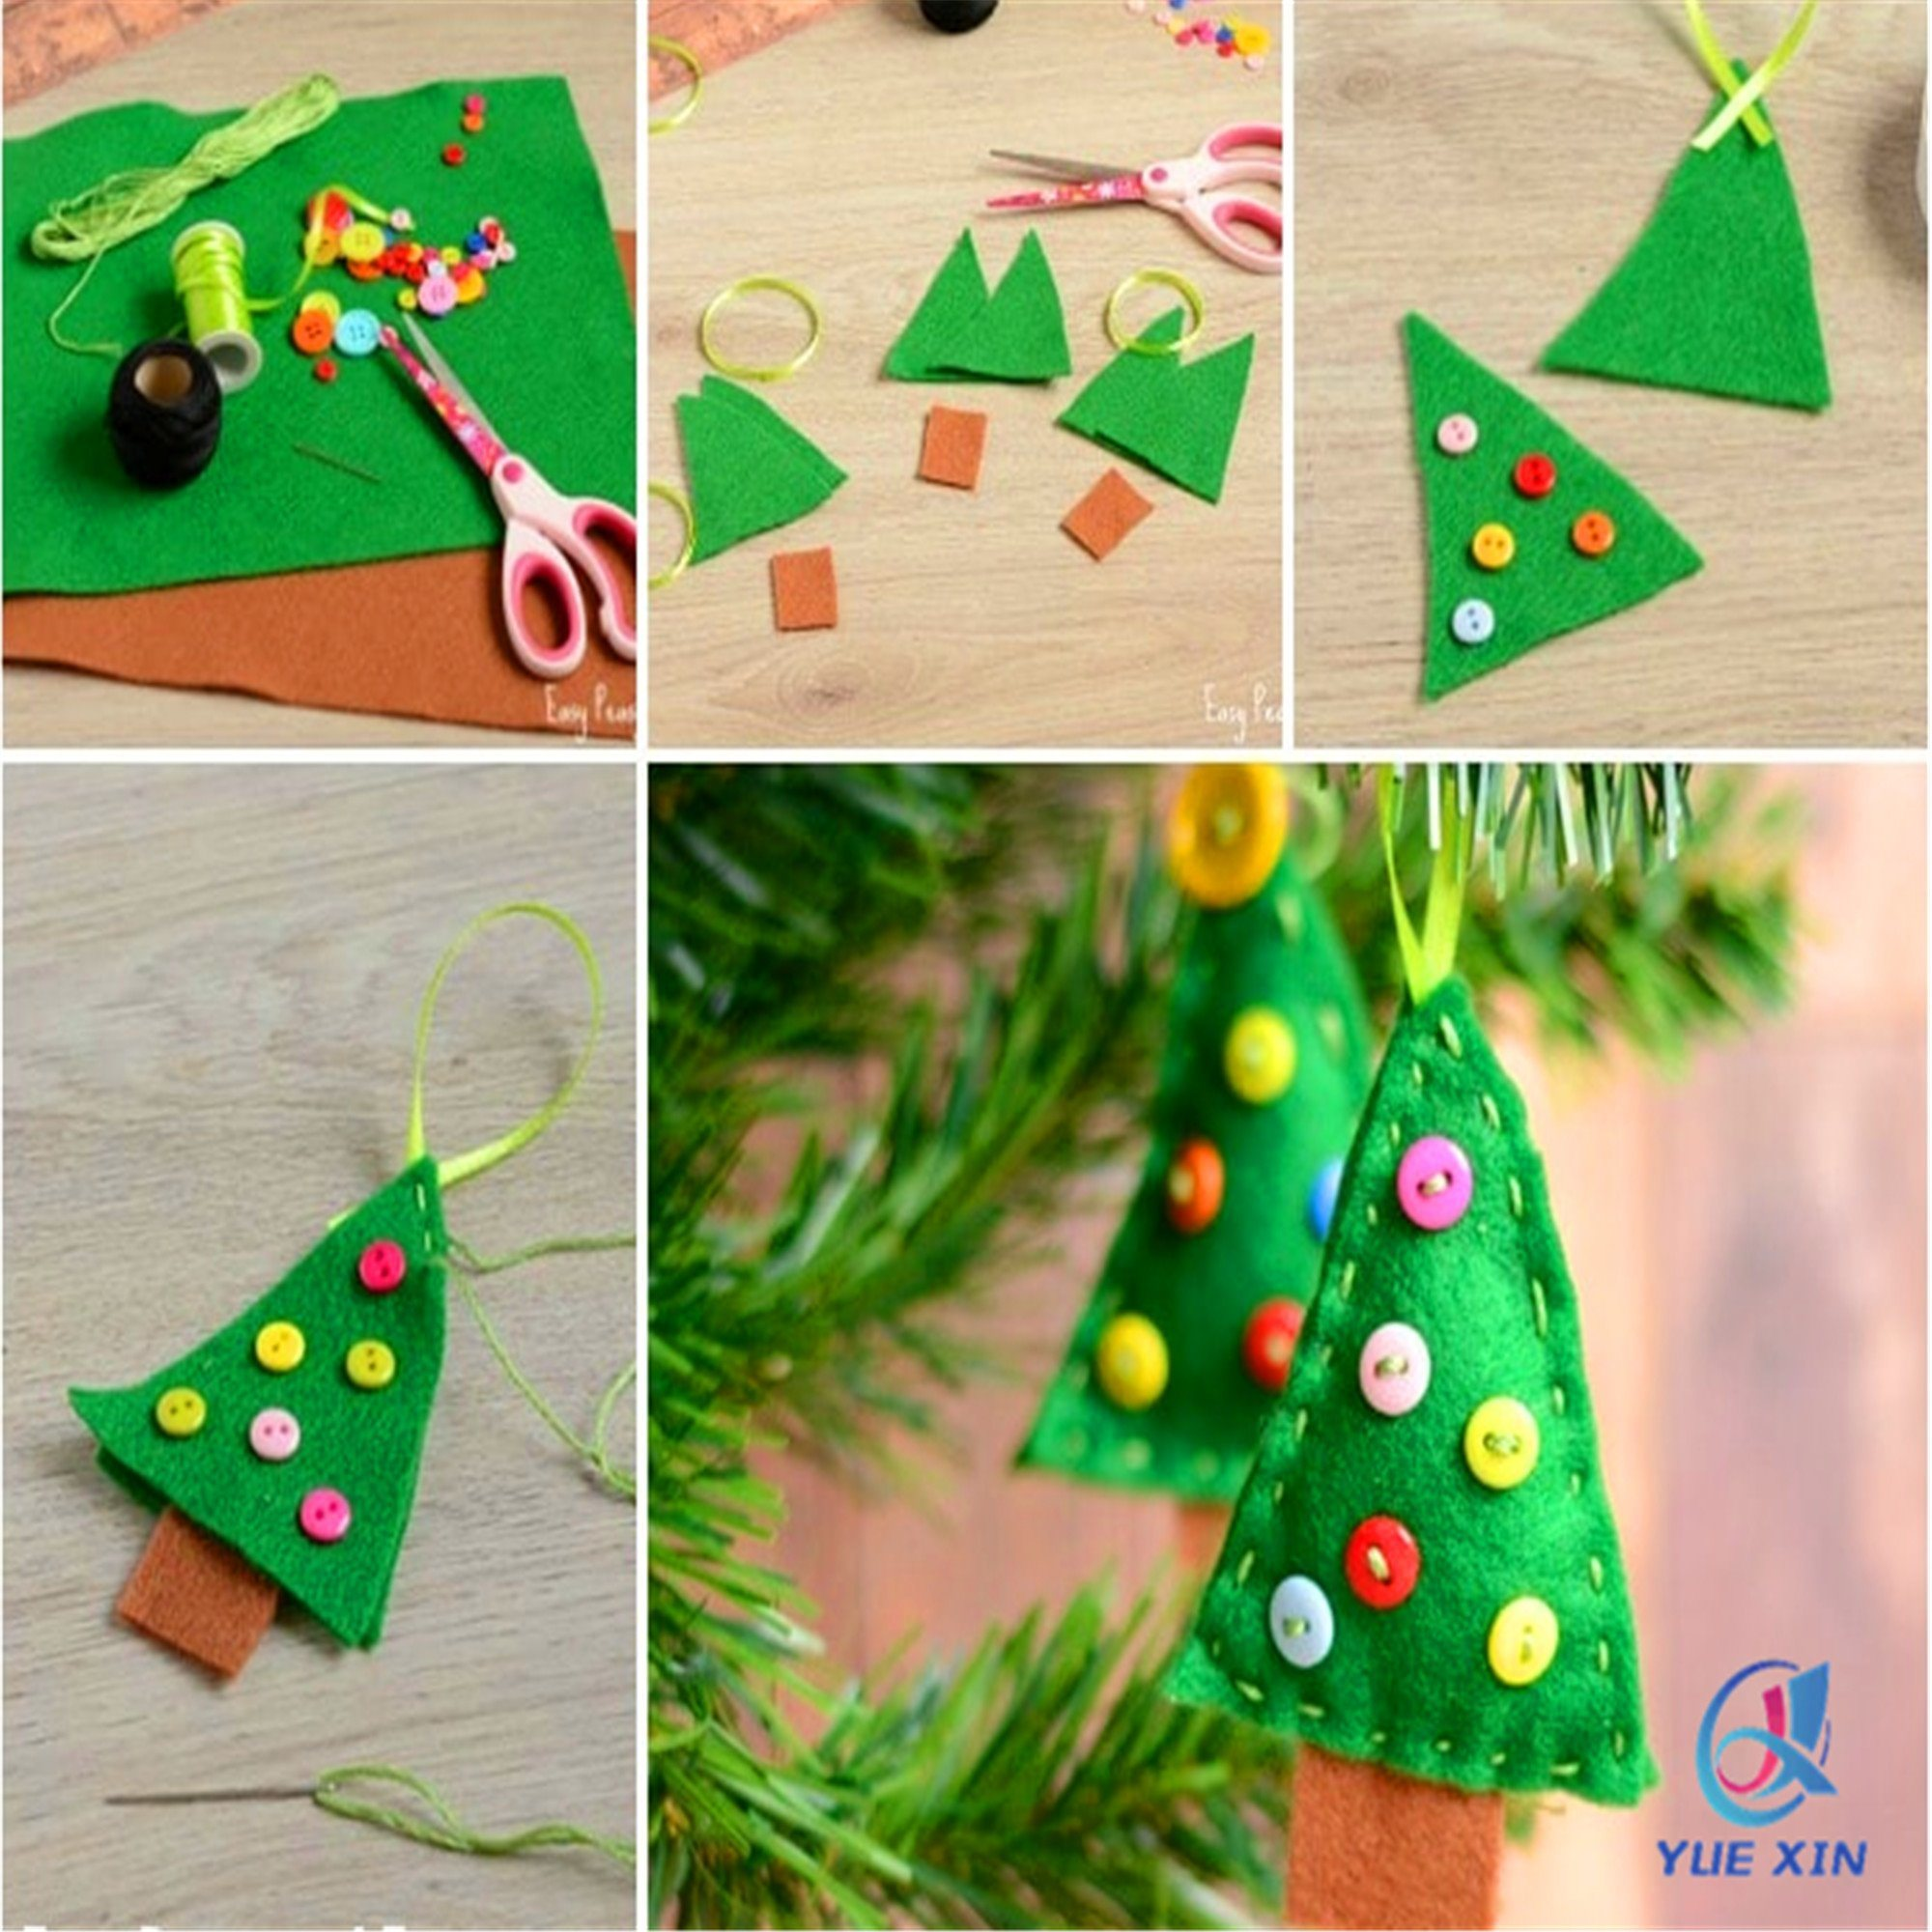 China Green Felt Christmas Tree Ornaments - China Felt Ornaments, Christmas Tree Ornametns